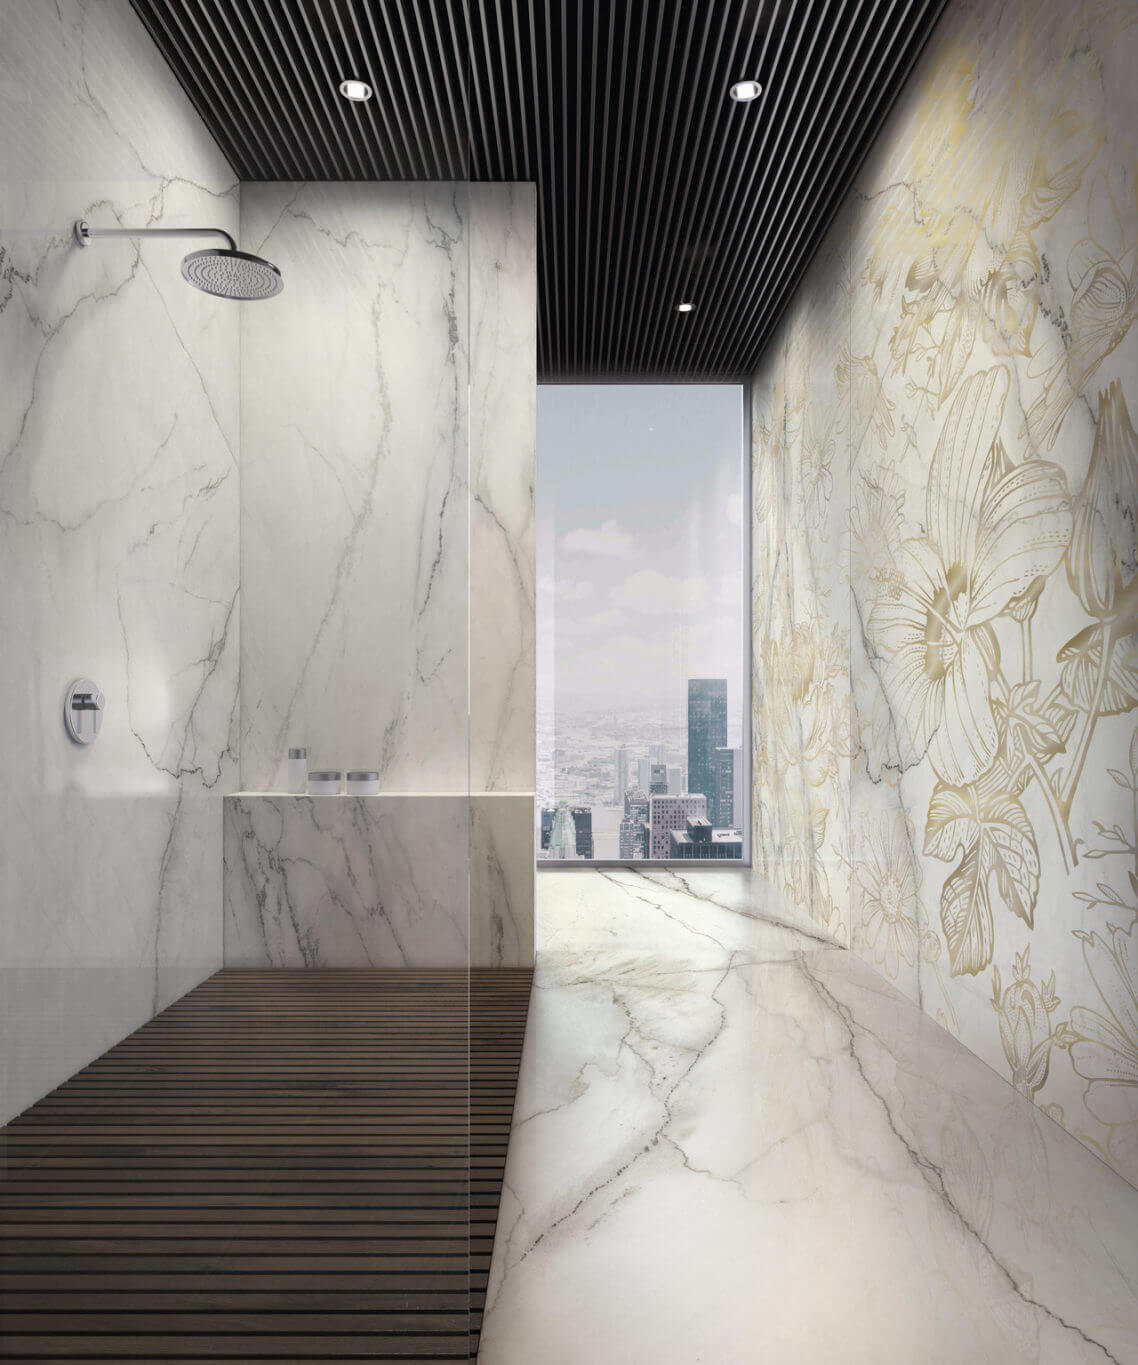 Large Ceramic Tile Slabs in Marble and Floral Looks | Why Tile